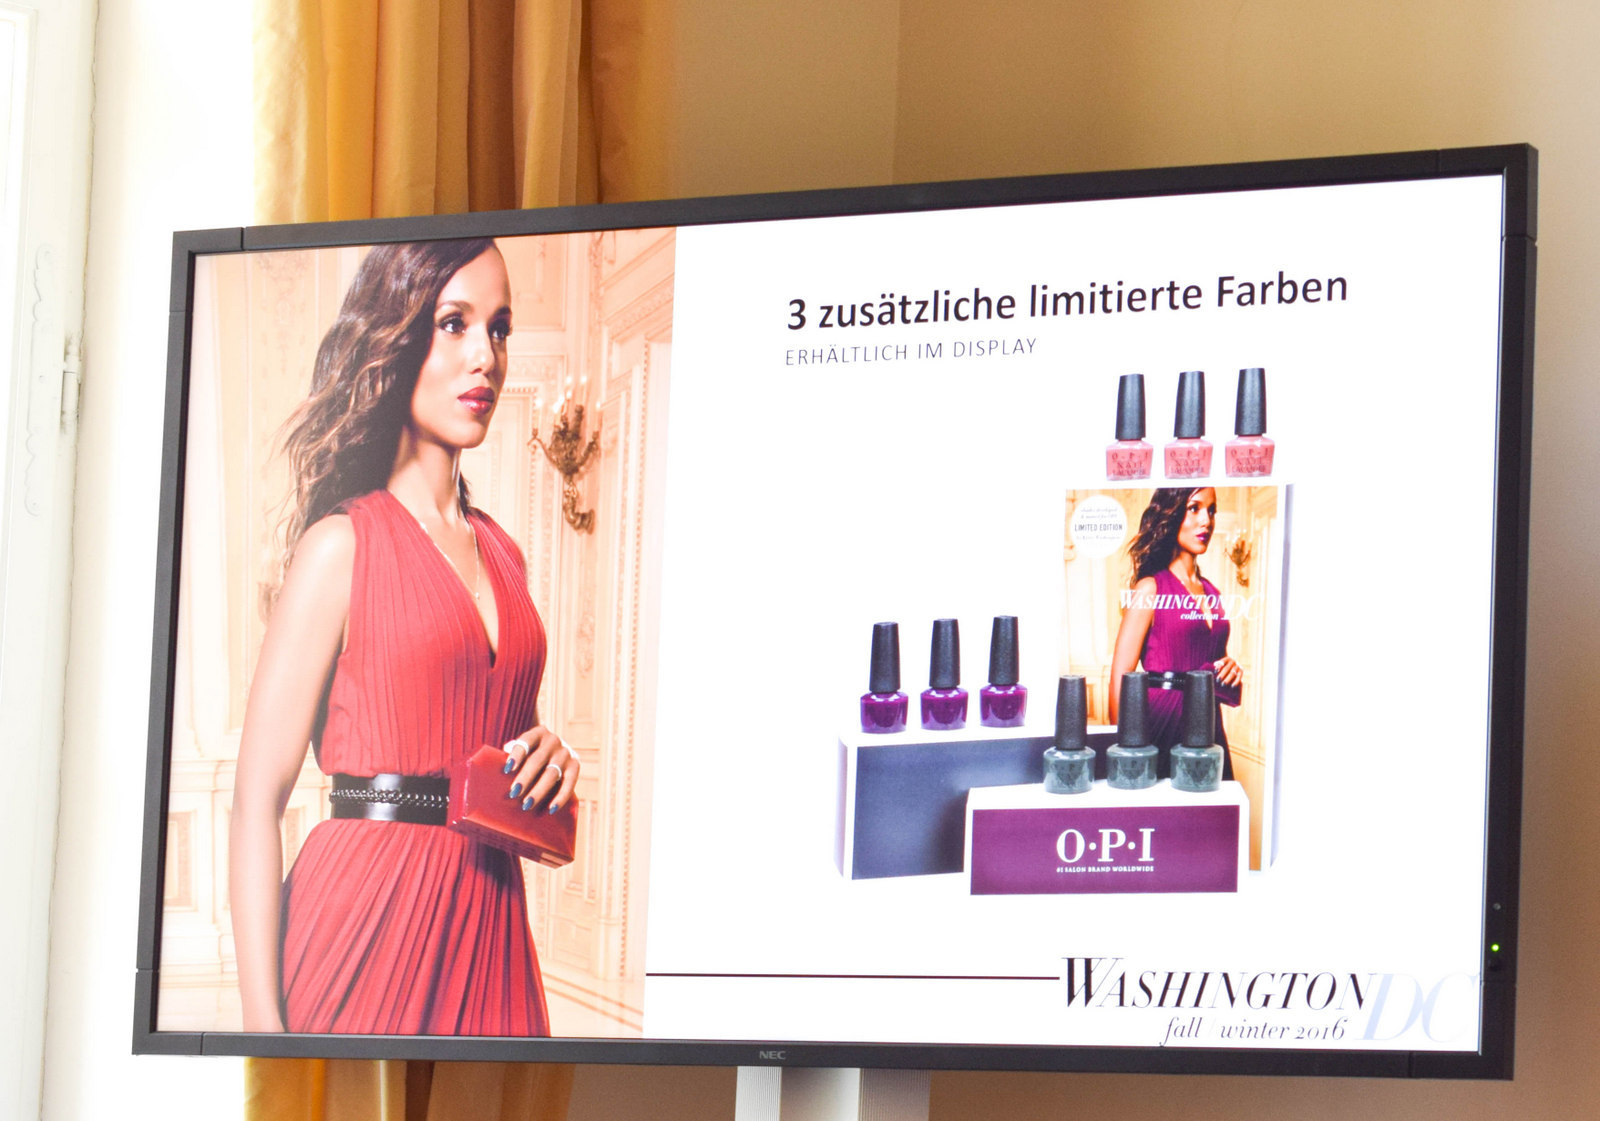 Neues Kampagnengesicht ist Kerry Washington für OPI Washington DC Herbst Nagellack Kollektion beim Coty Color Day 2016 in München